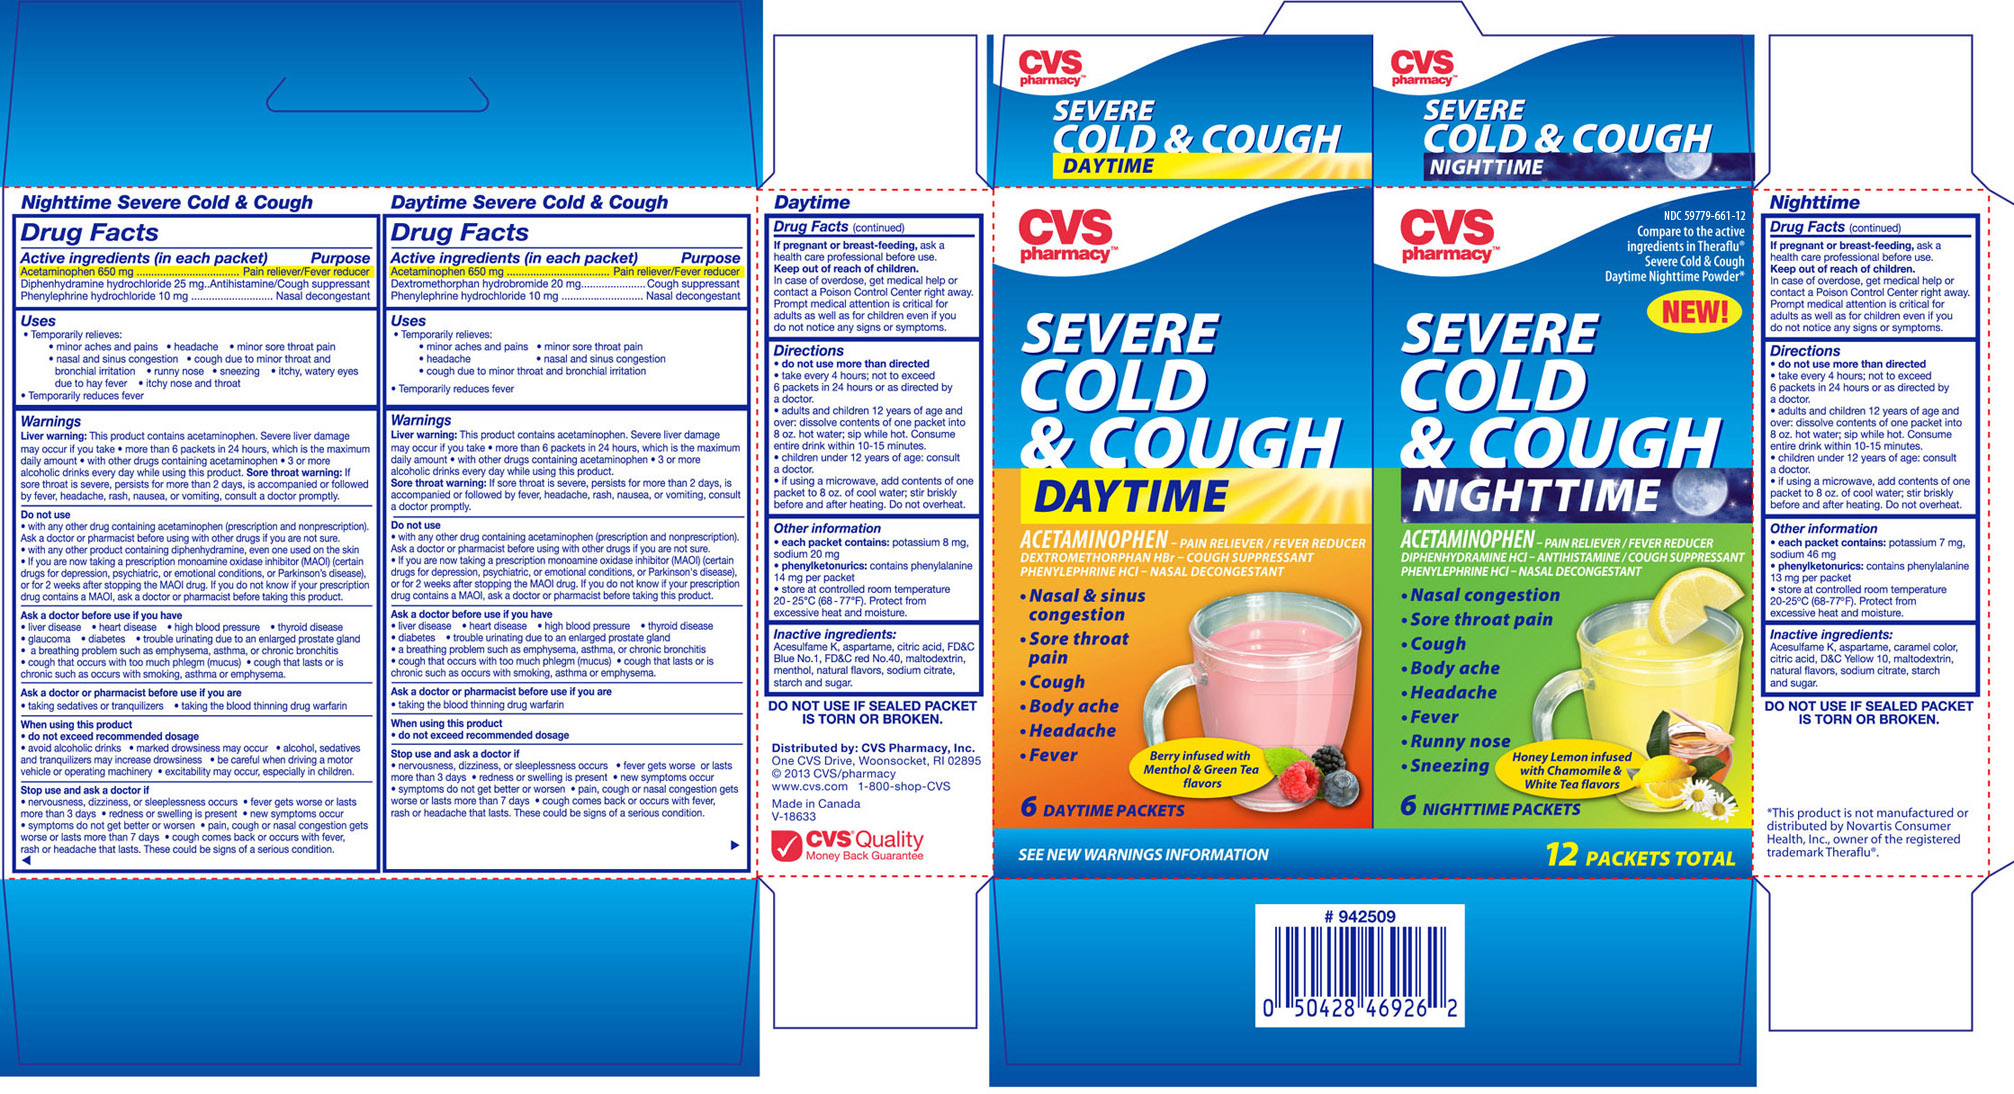 Cvs Pharmacy Daytime Nighttime Severe Cold And Cough Kit Breastfeeding